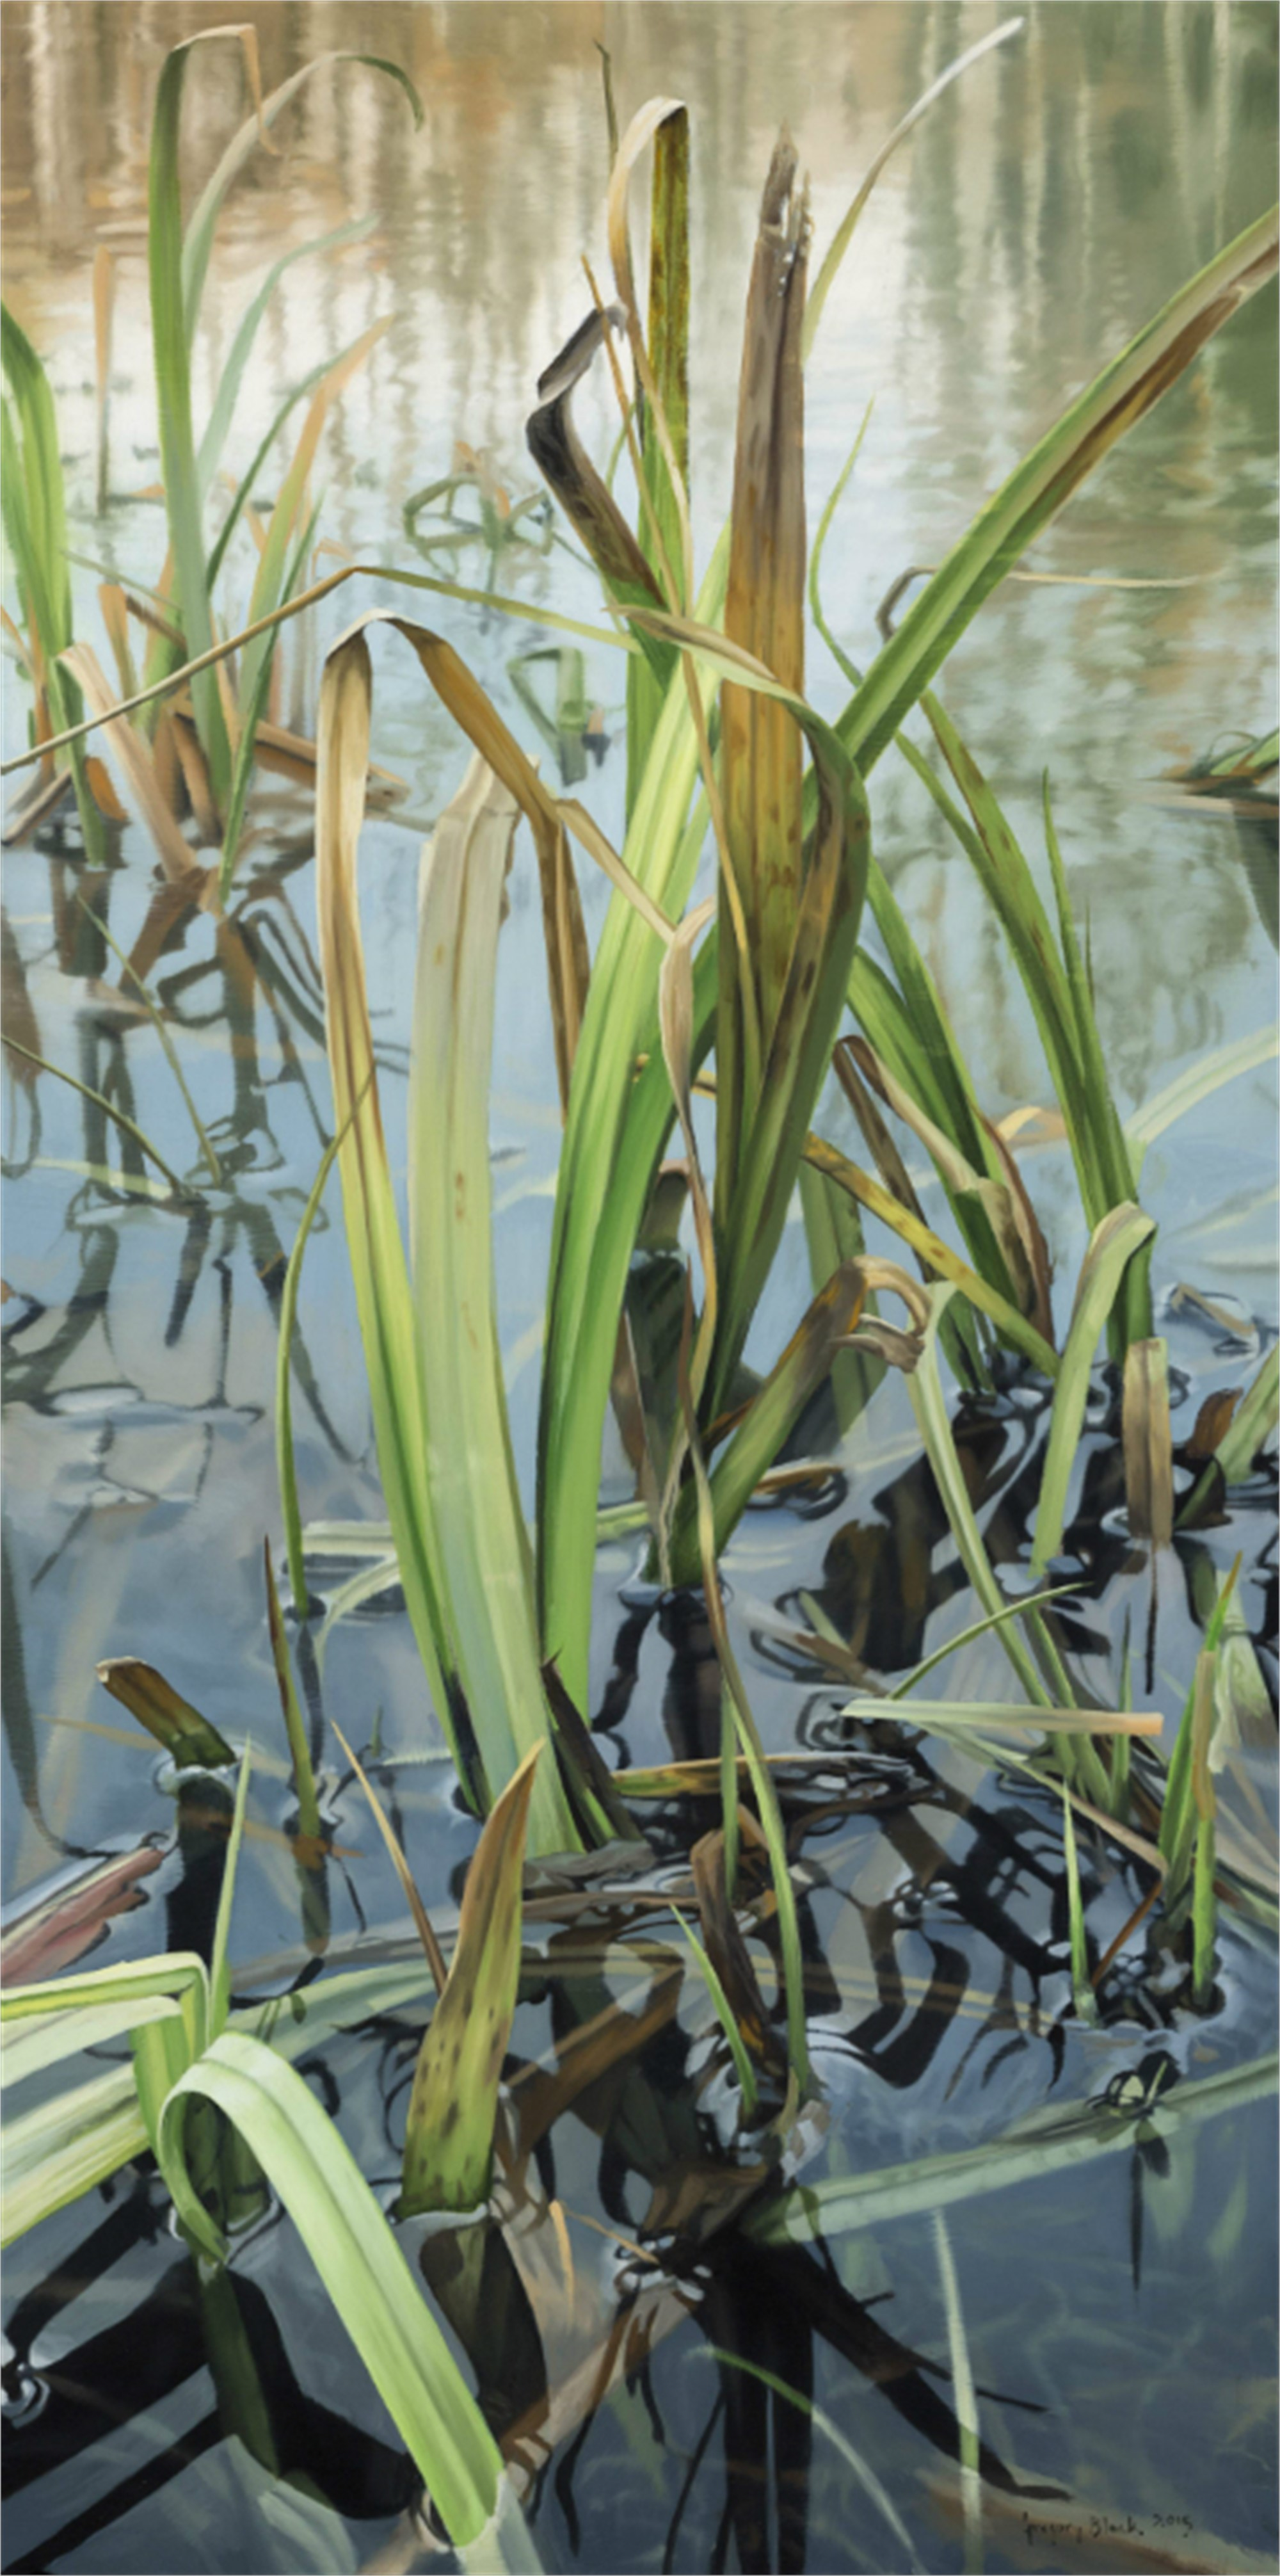 The Pond in May by Gregory Block